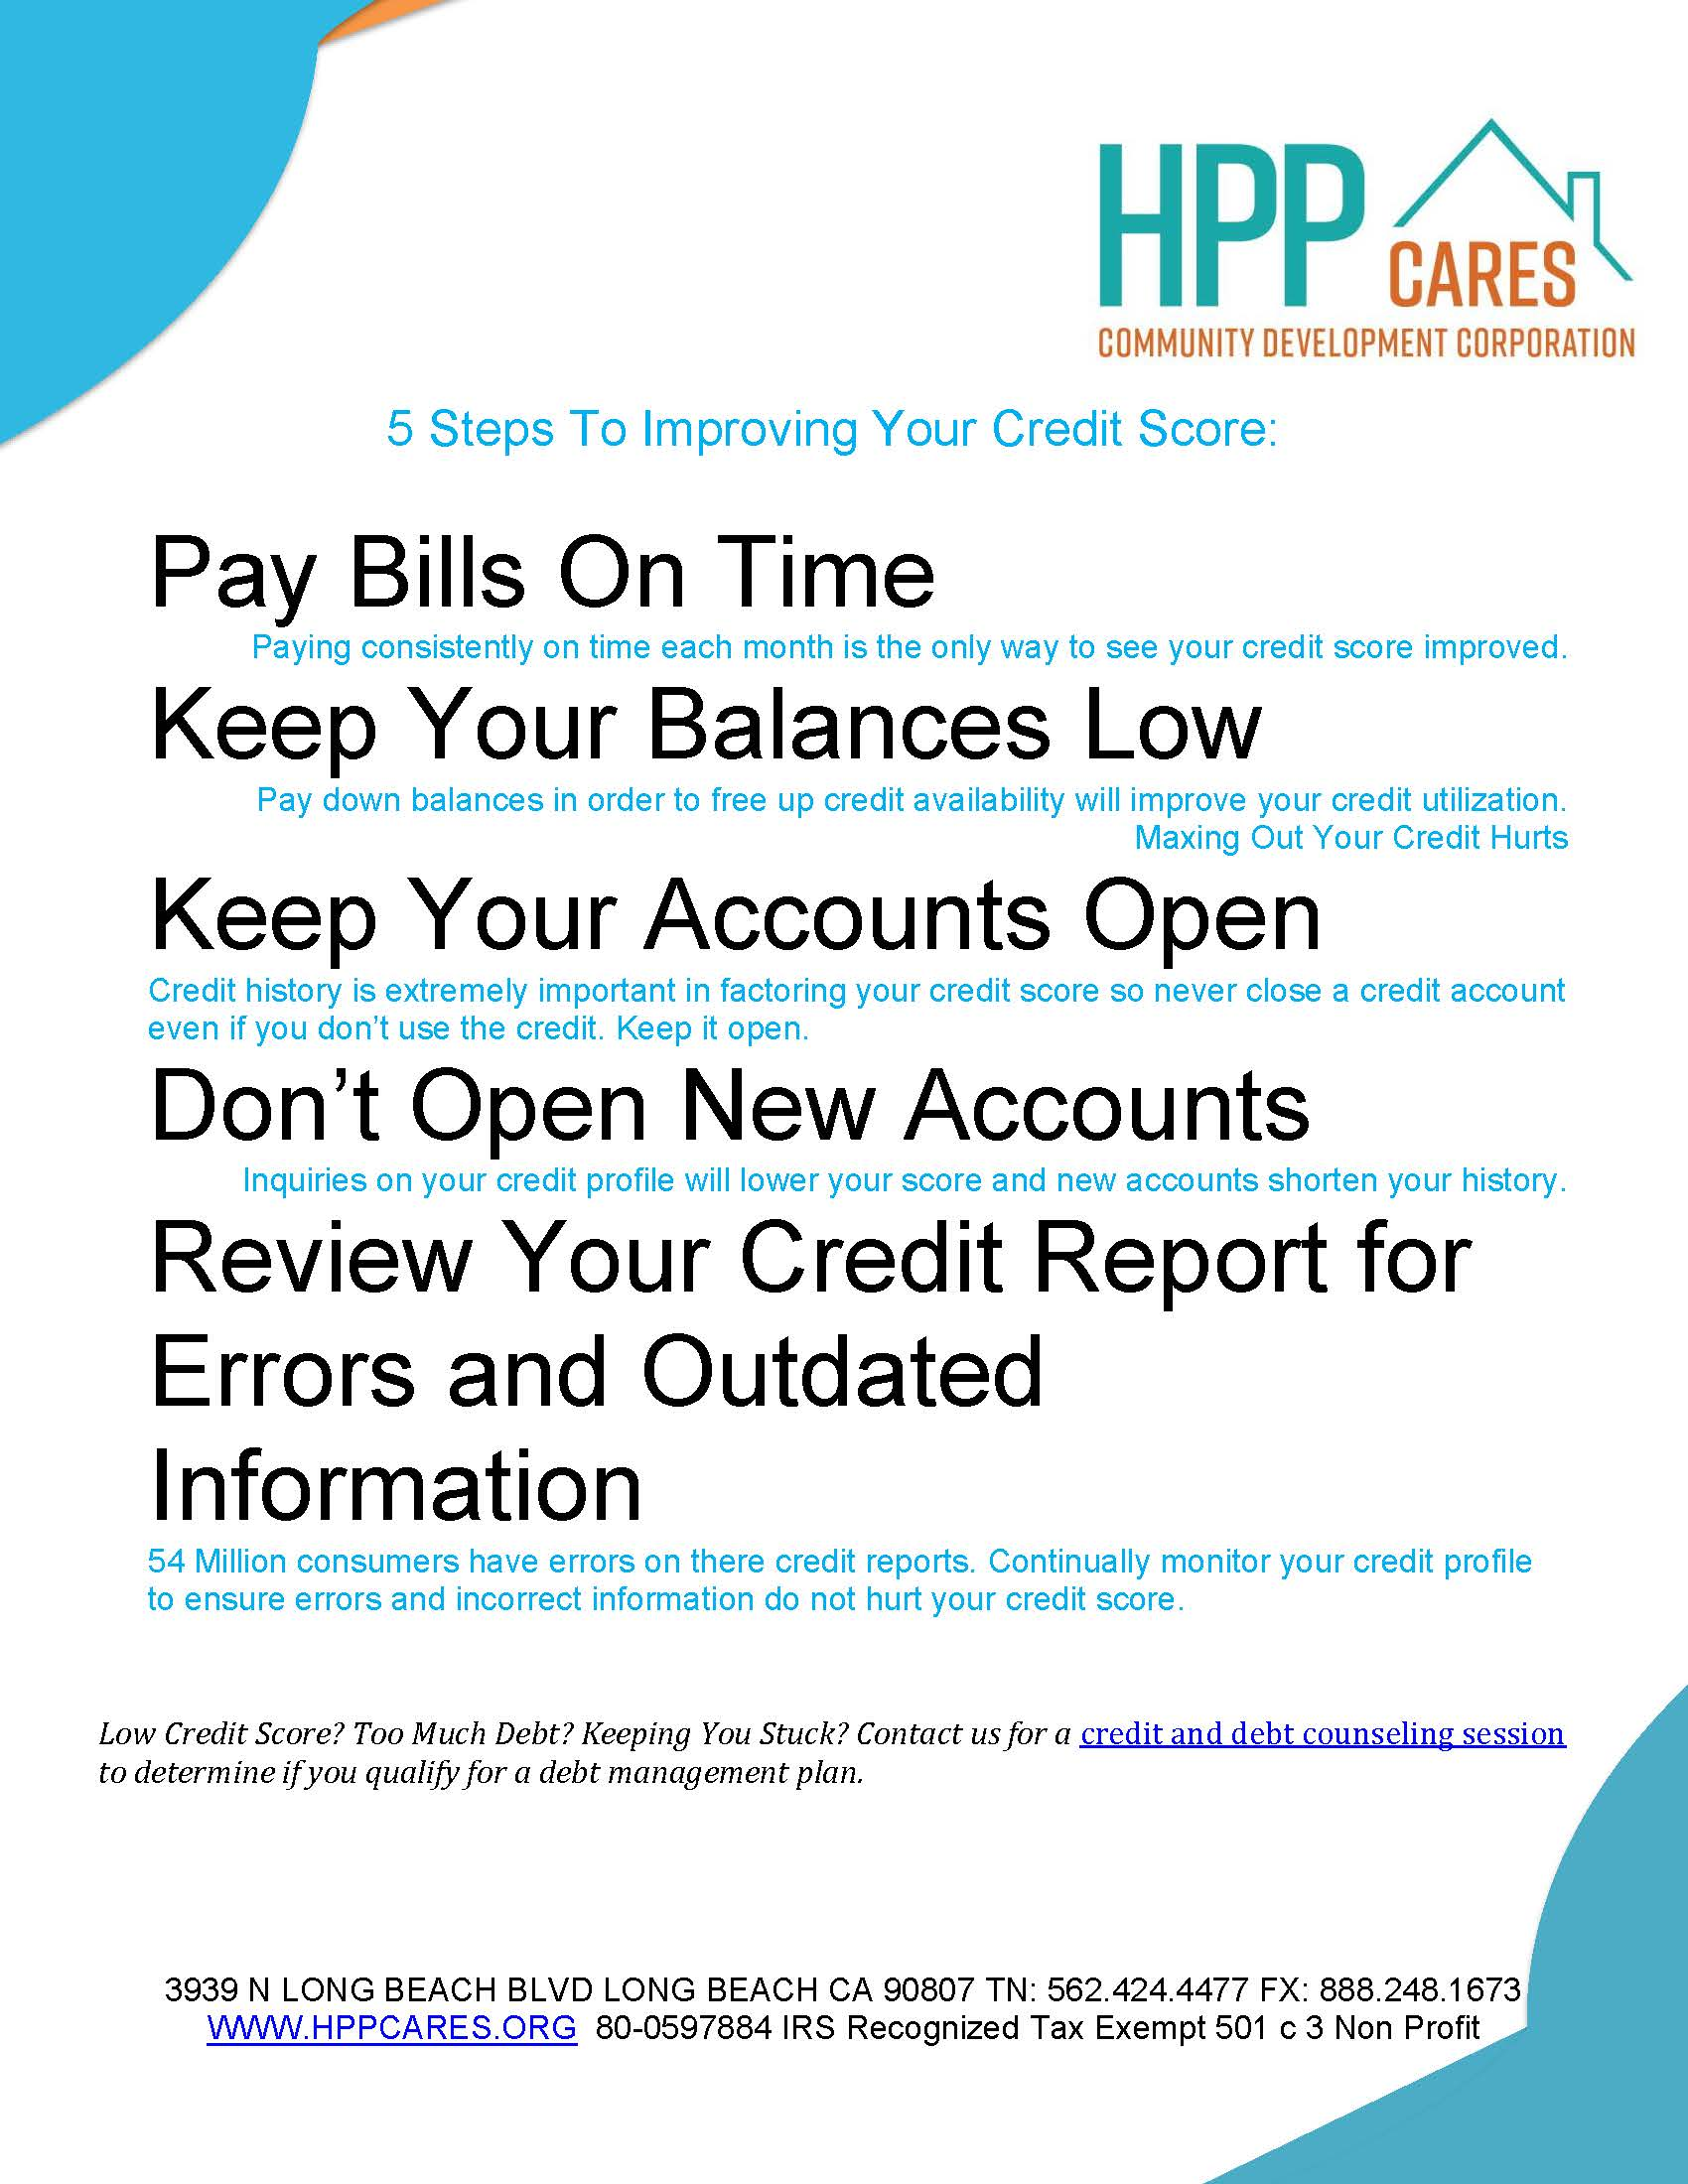 5 Steps To Improve Your Credit Score.jpg